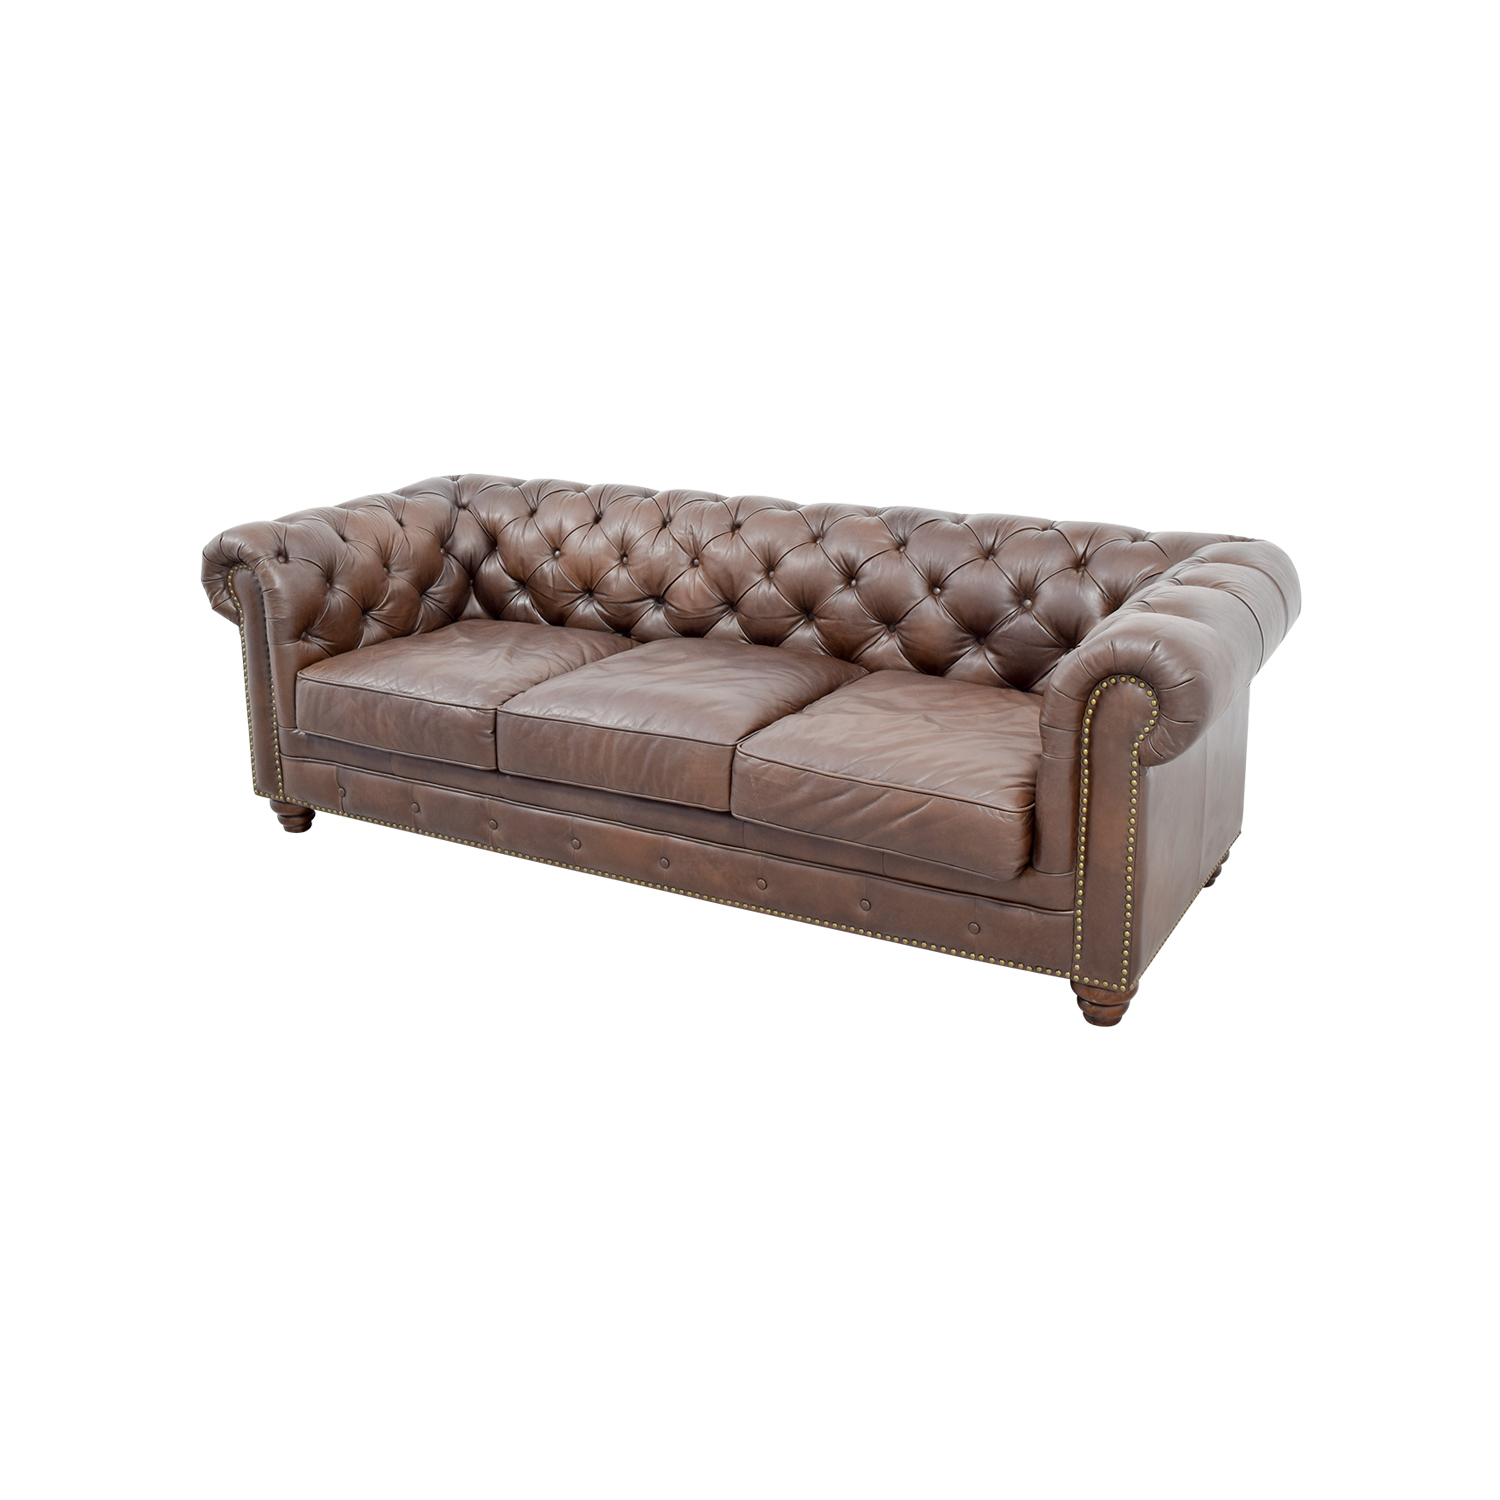 36 Off Raymour Flanigan Raymour Flanigan Bellanest Saddler  ~ Cheap Tufted Leather Sofa